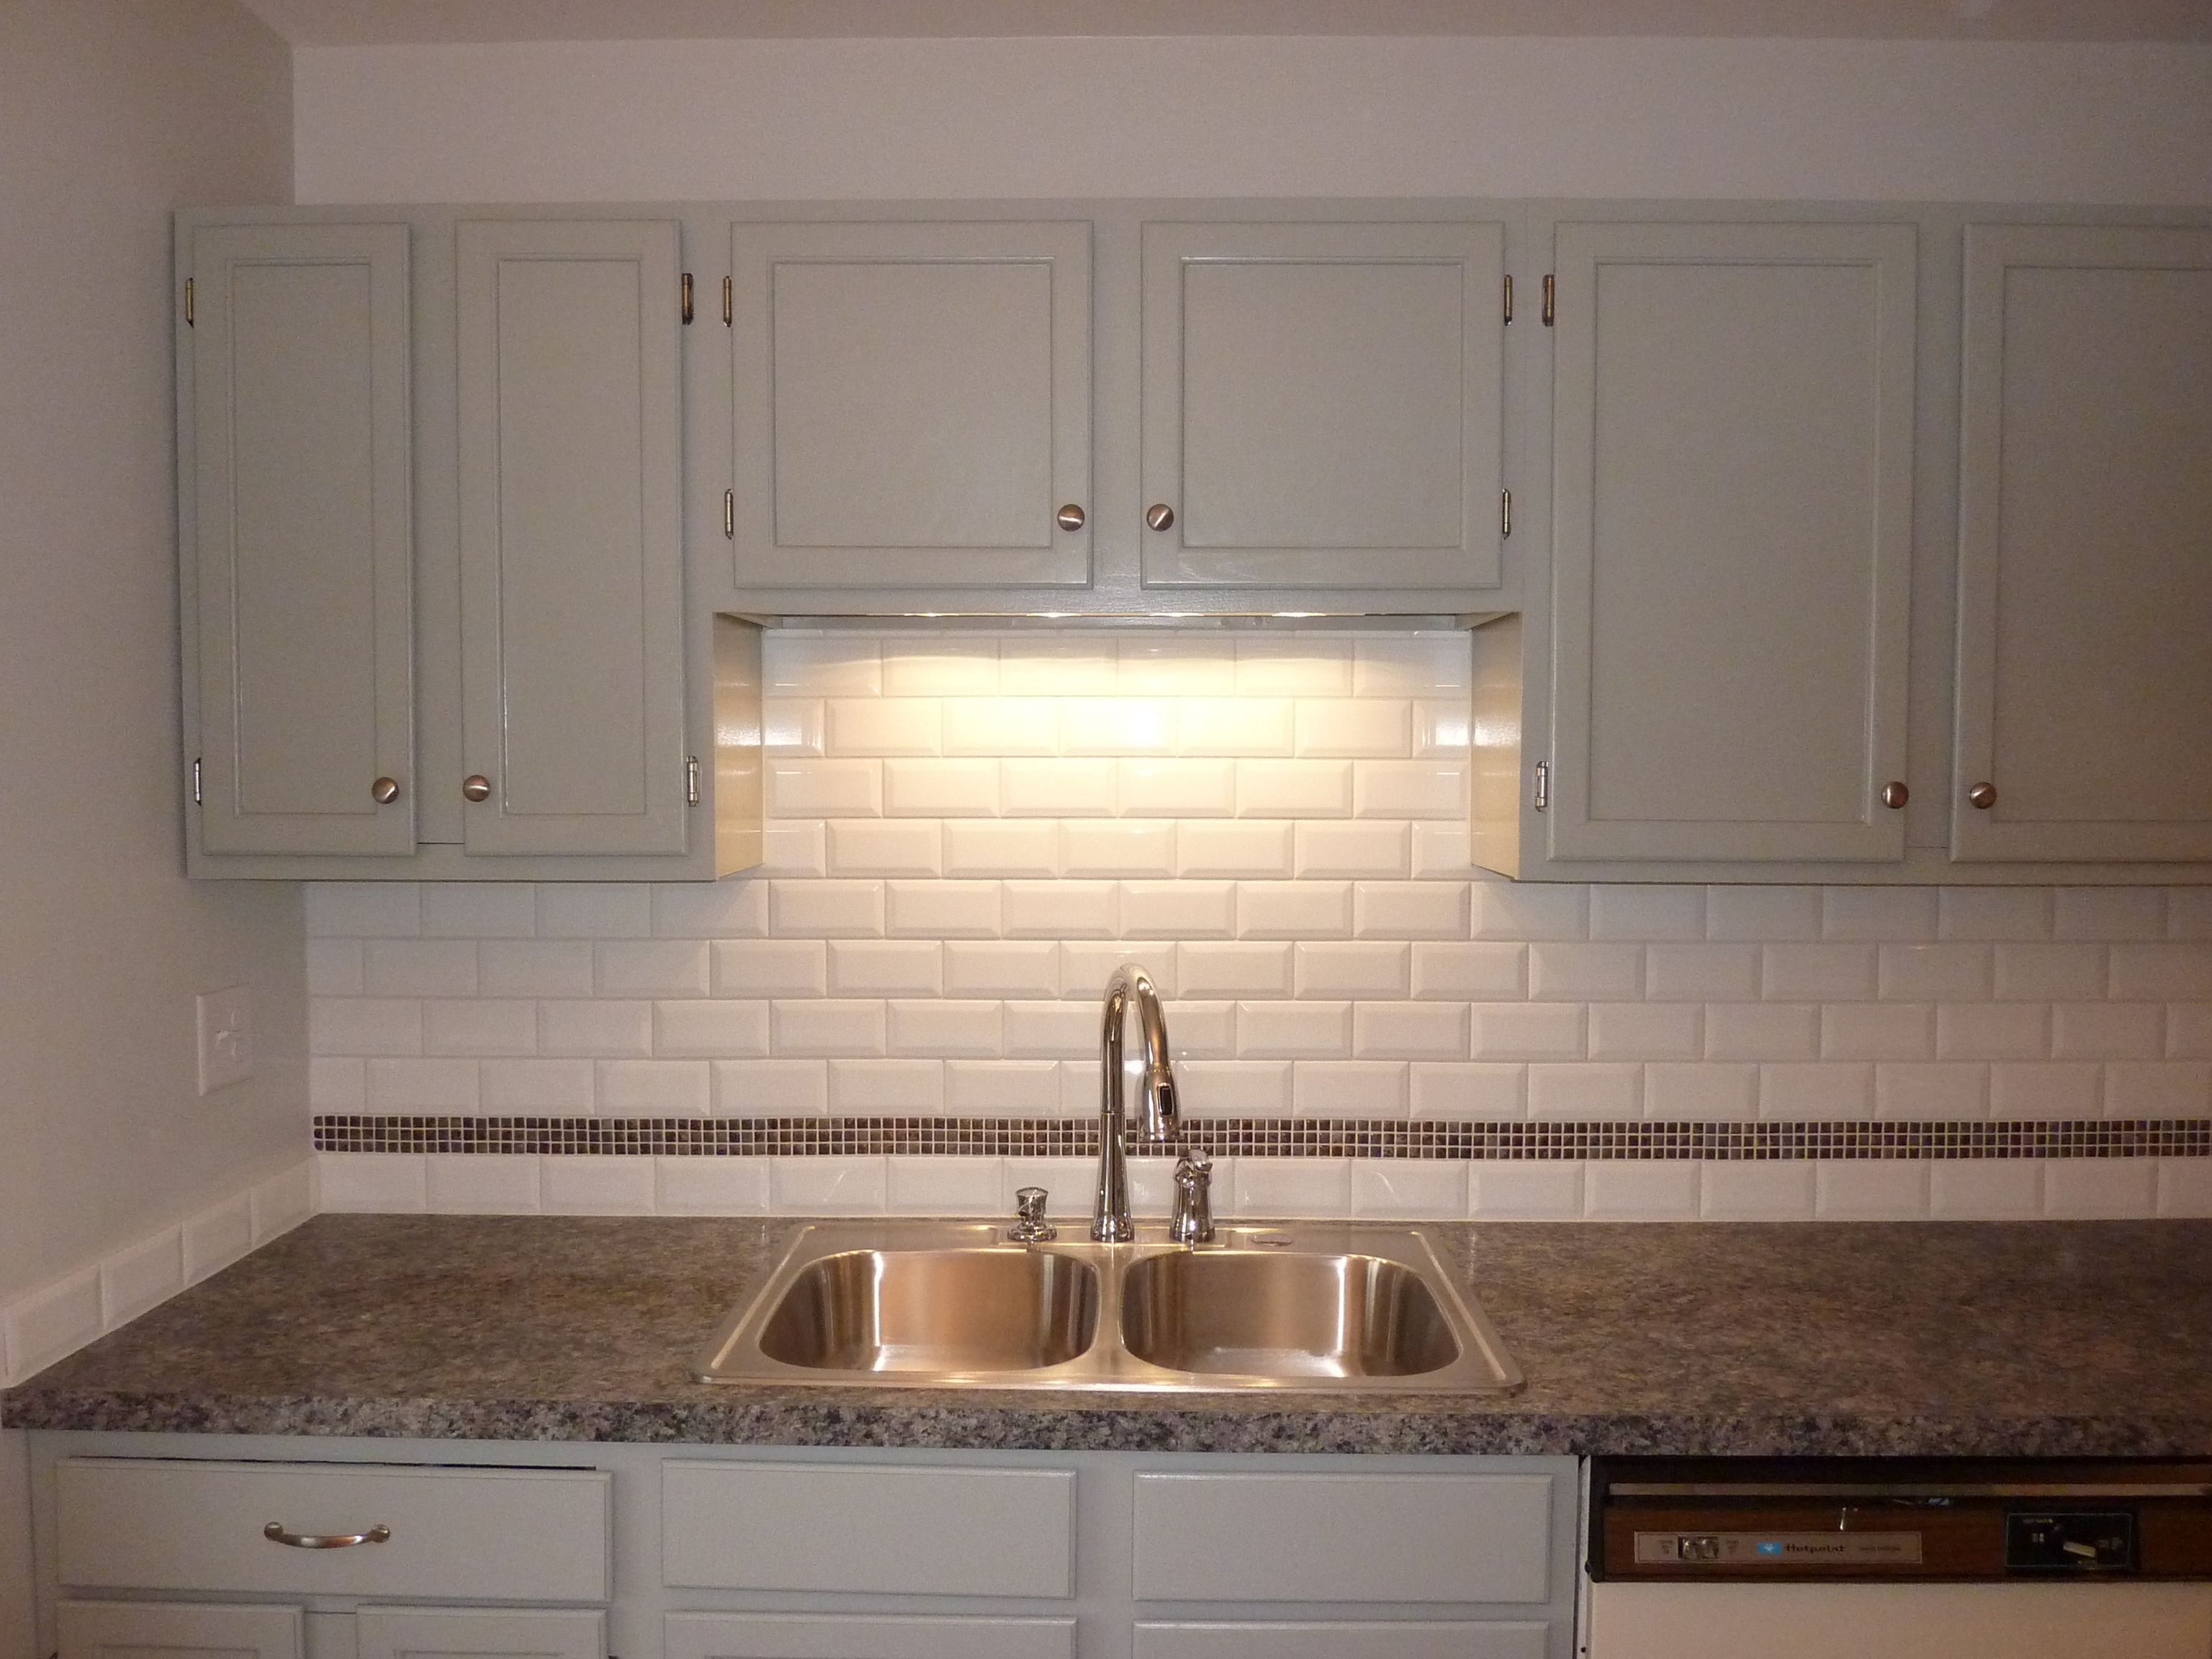 3d Kitchen Flooring Painted Gray Cabinets 3d White Subway Tiles With A Stone